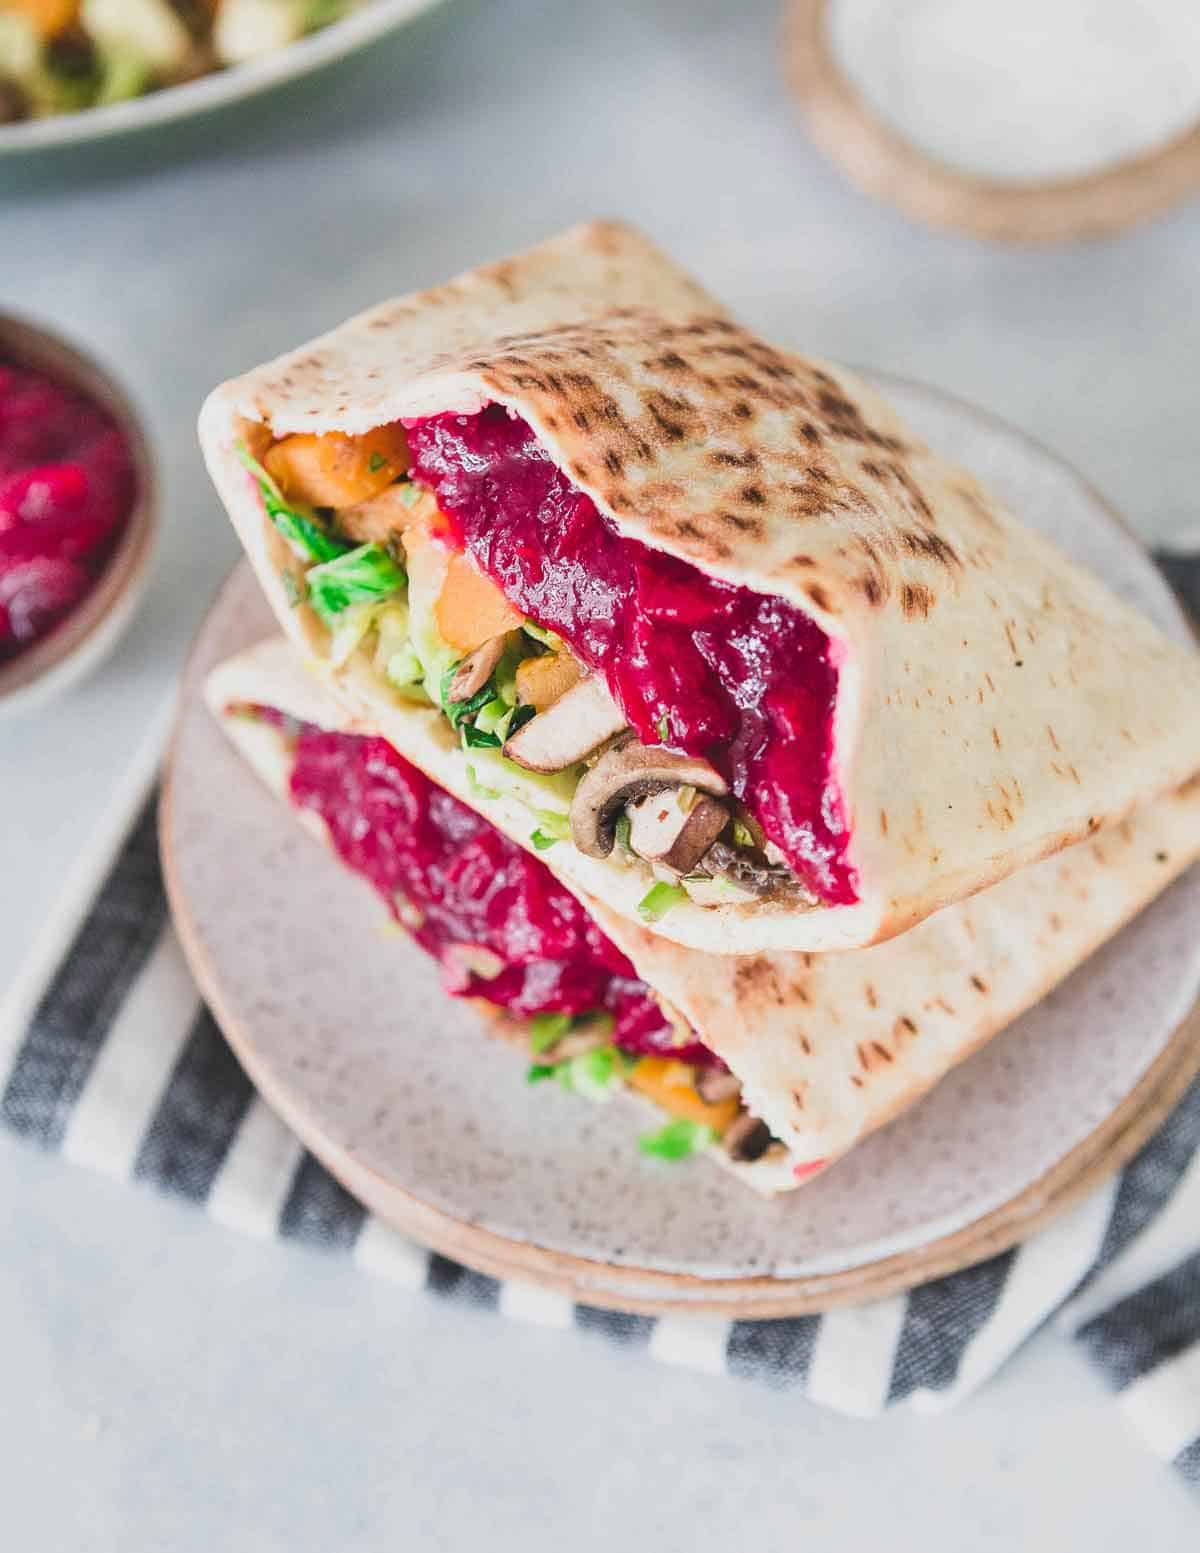 Repurpose Thanksgiving leftovers into this healthy and easy Thanksgiving cranberry vegetable sandwich for an easy lunch!